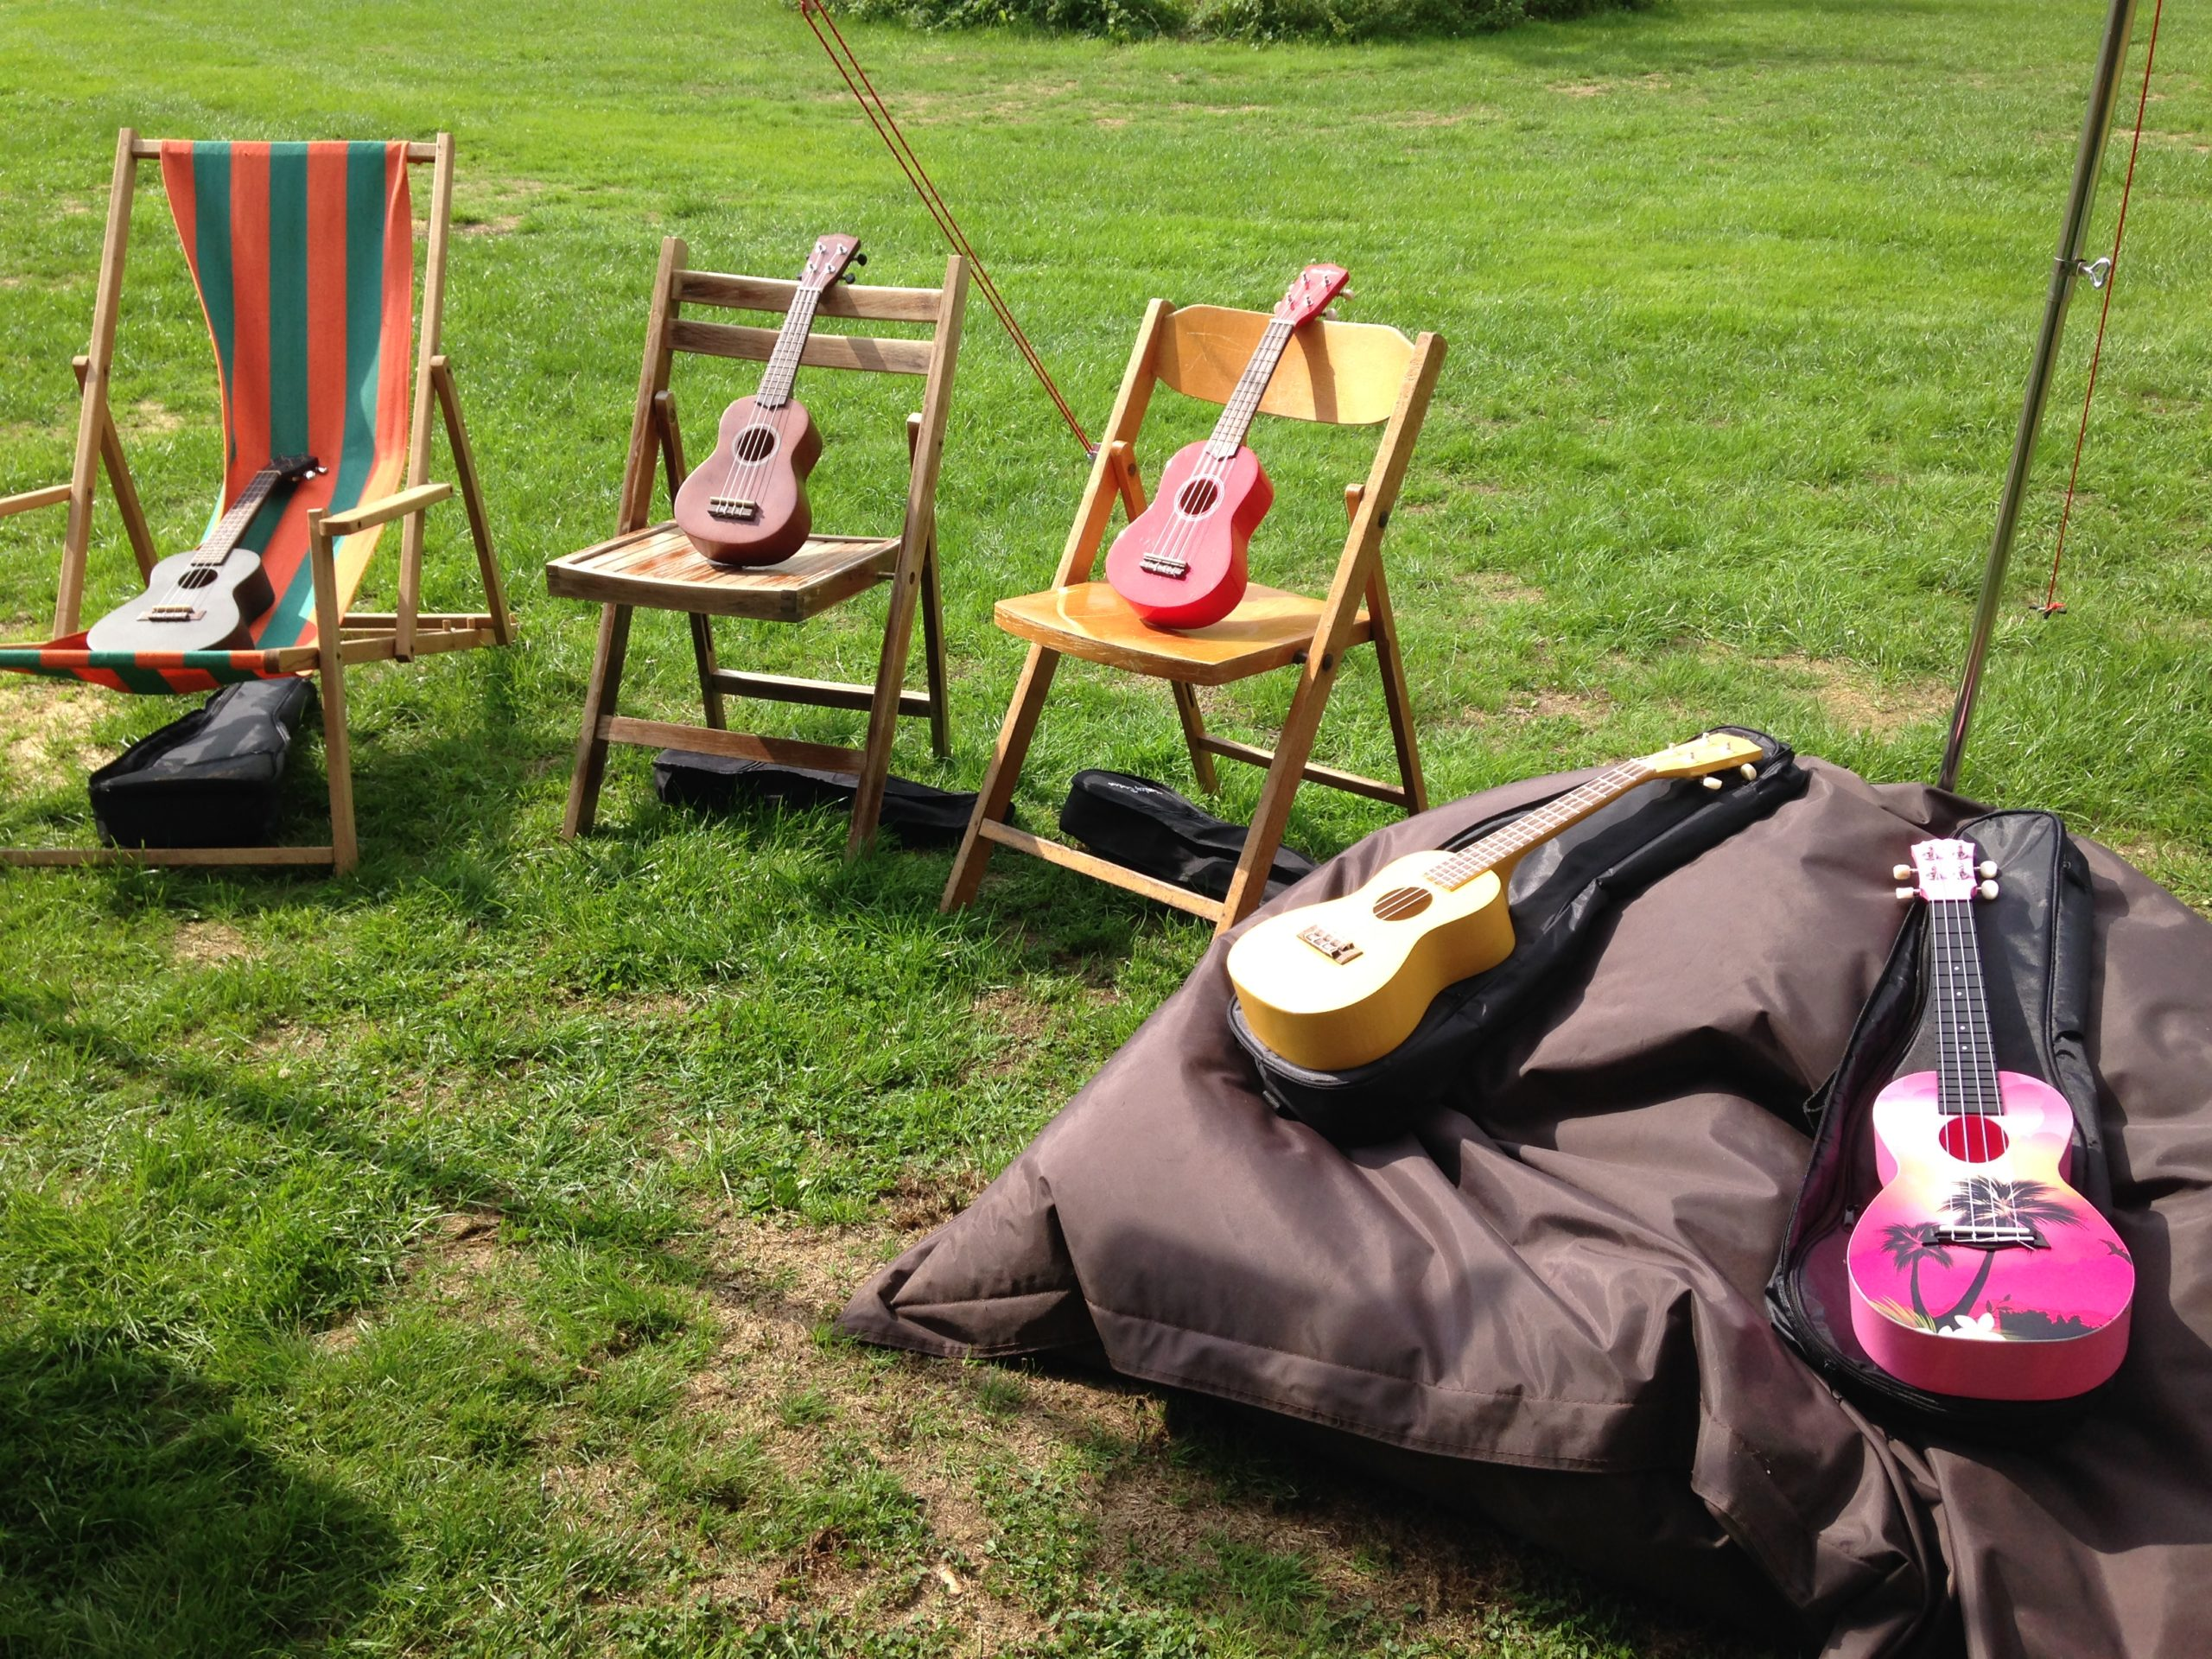 Ukelele workshop buiten - Ukelele4U